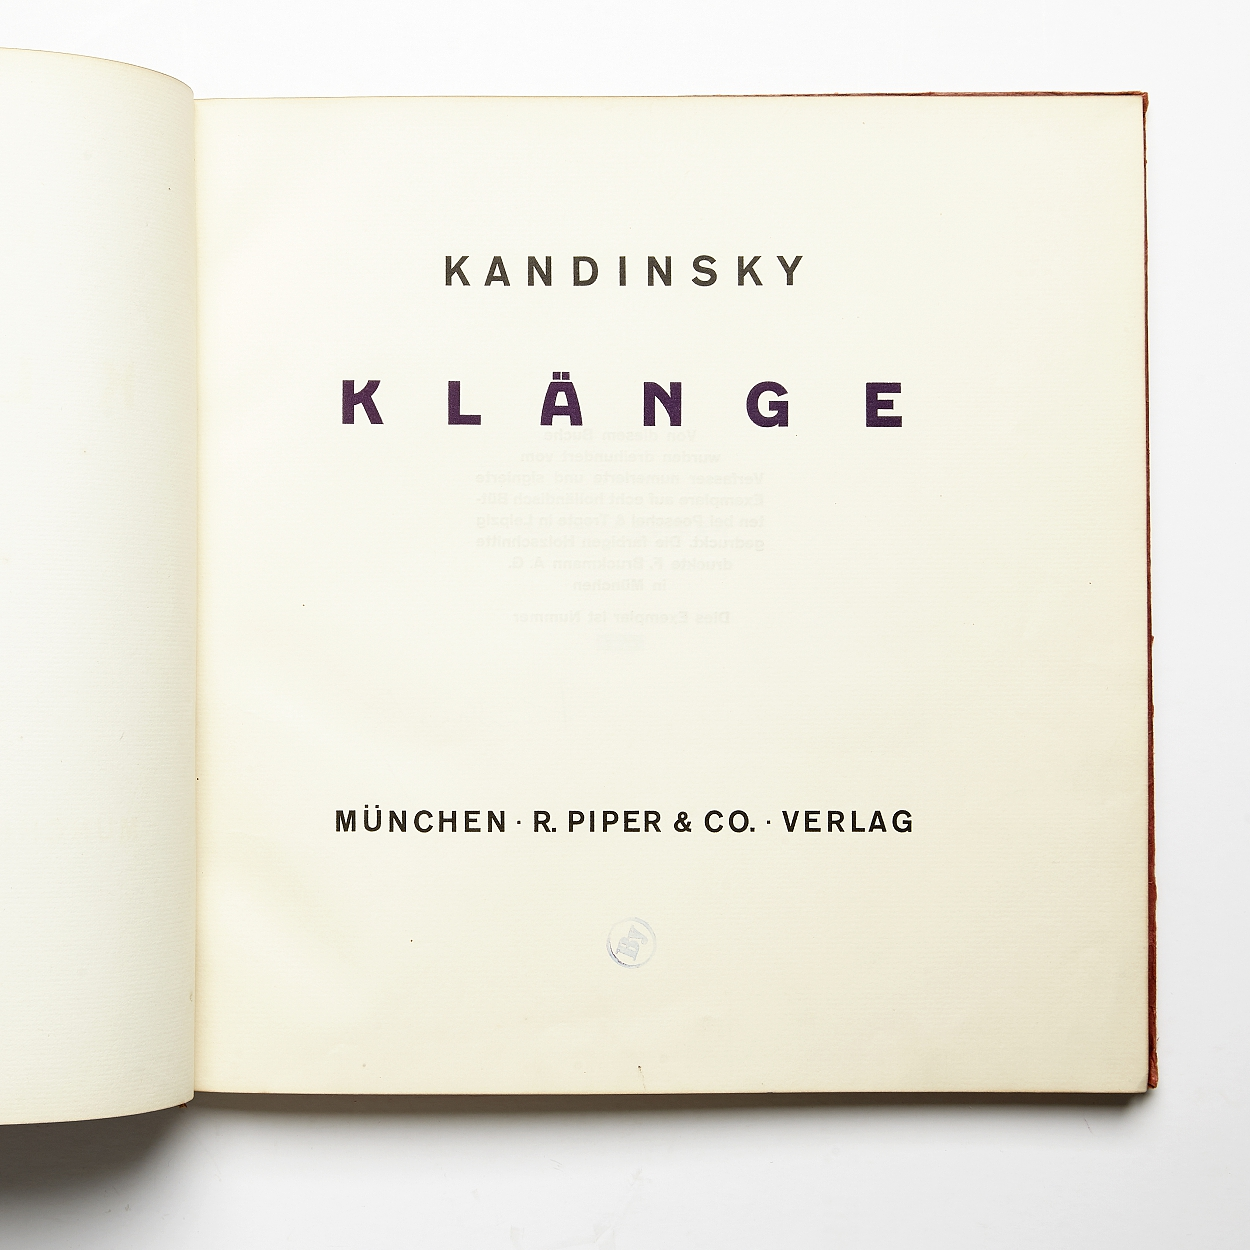 Kandinsky's rare Klänge 1913 signed by the artist